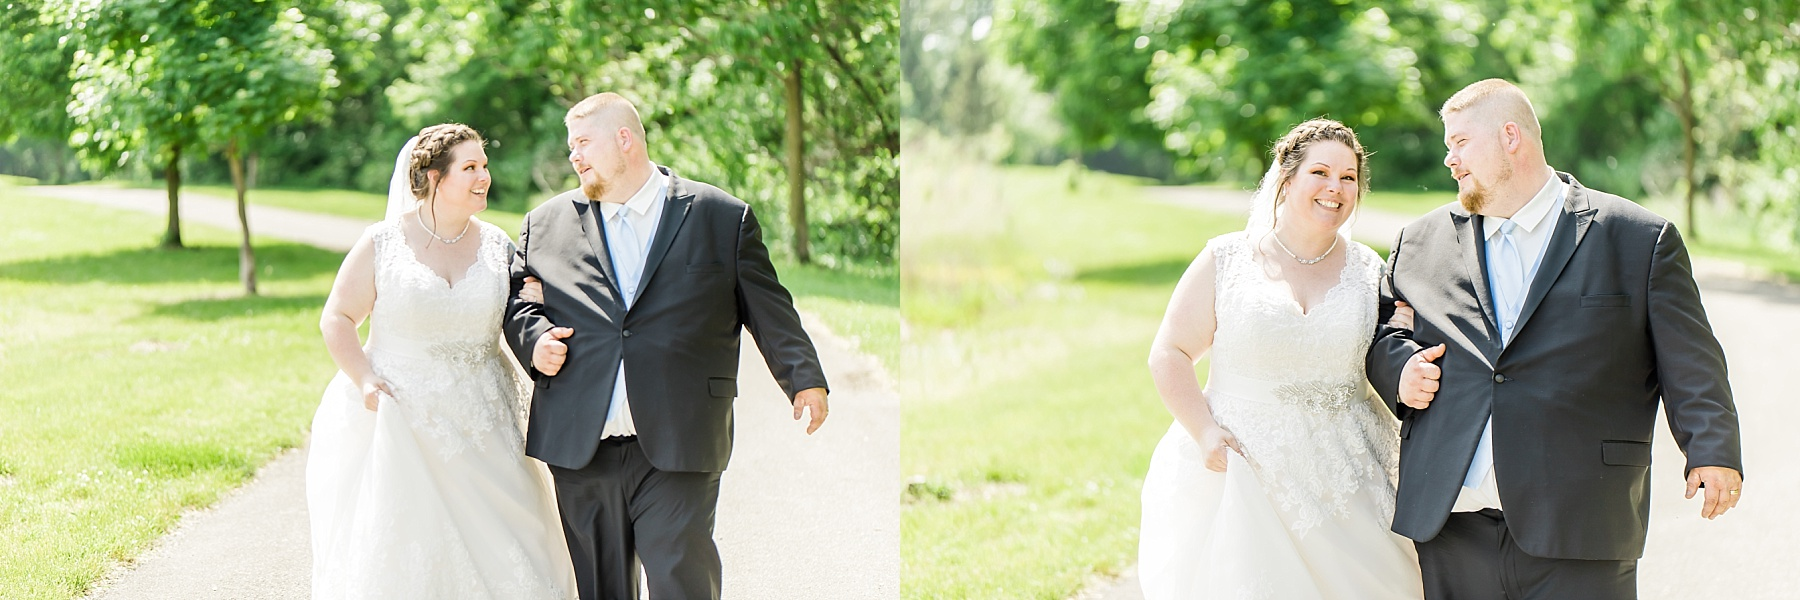 lafayette indiana wedding photographer photography thomas duncan hall_0156.jpg